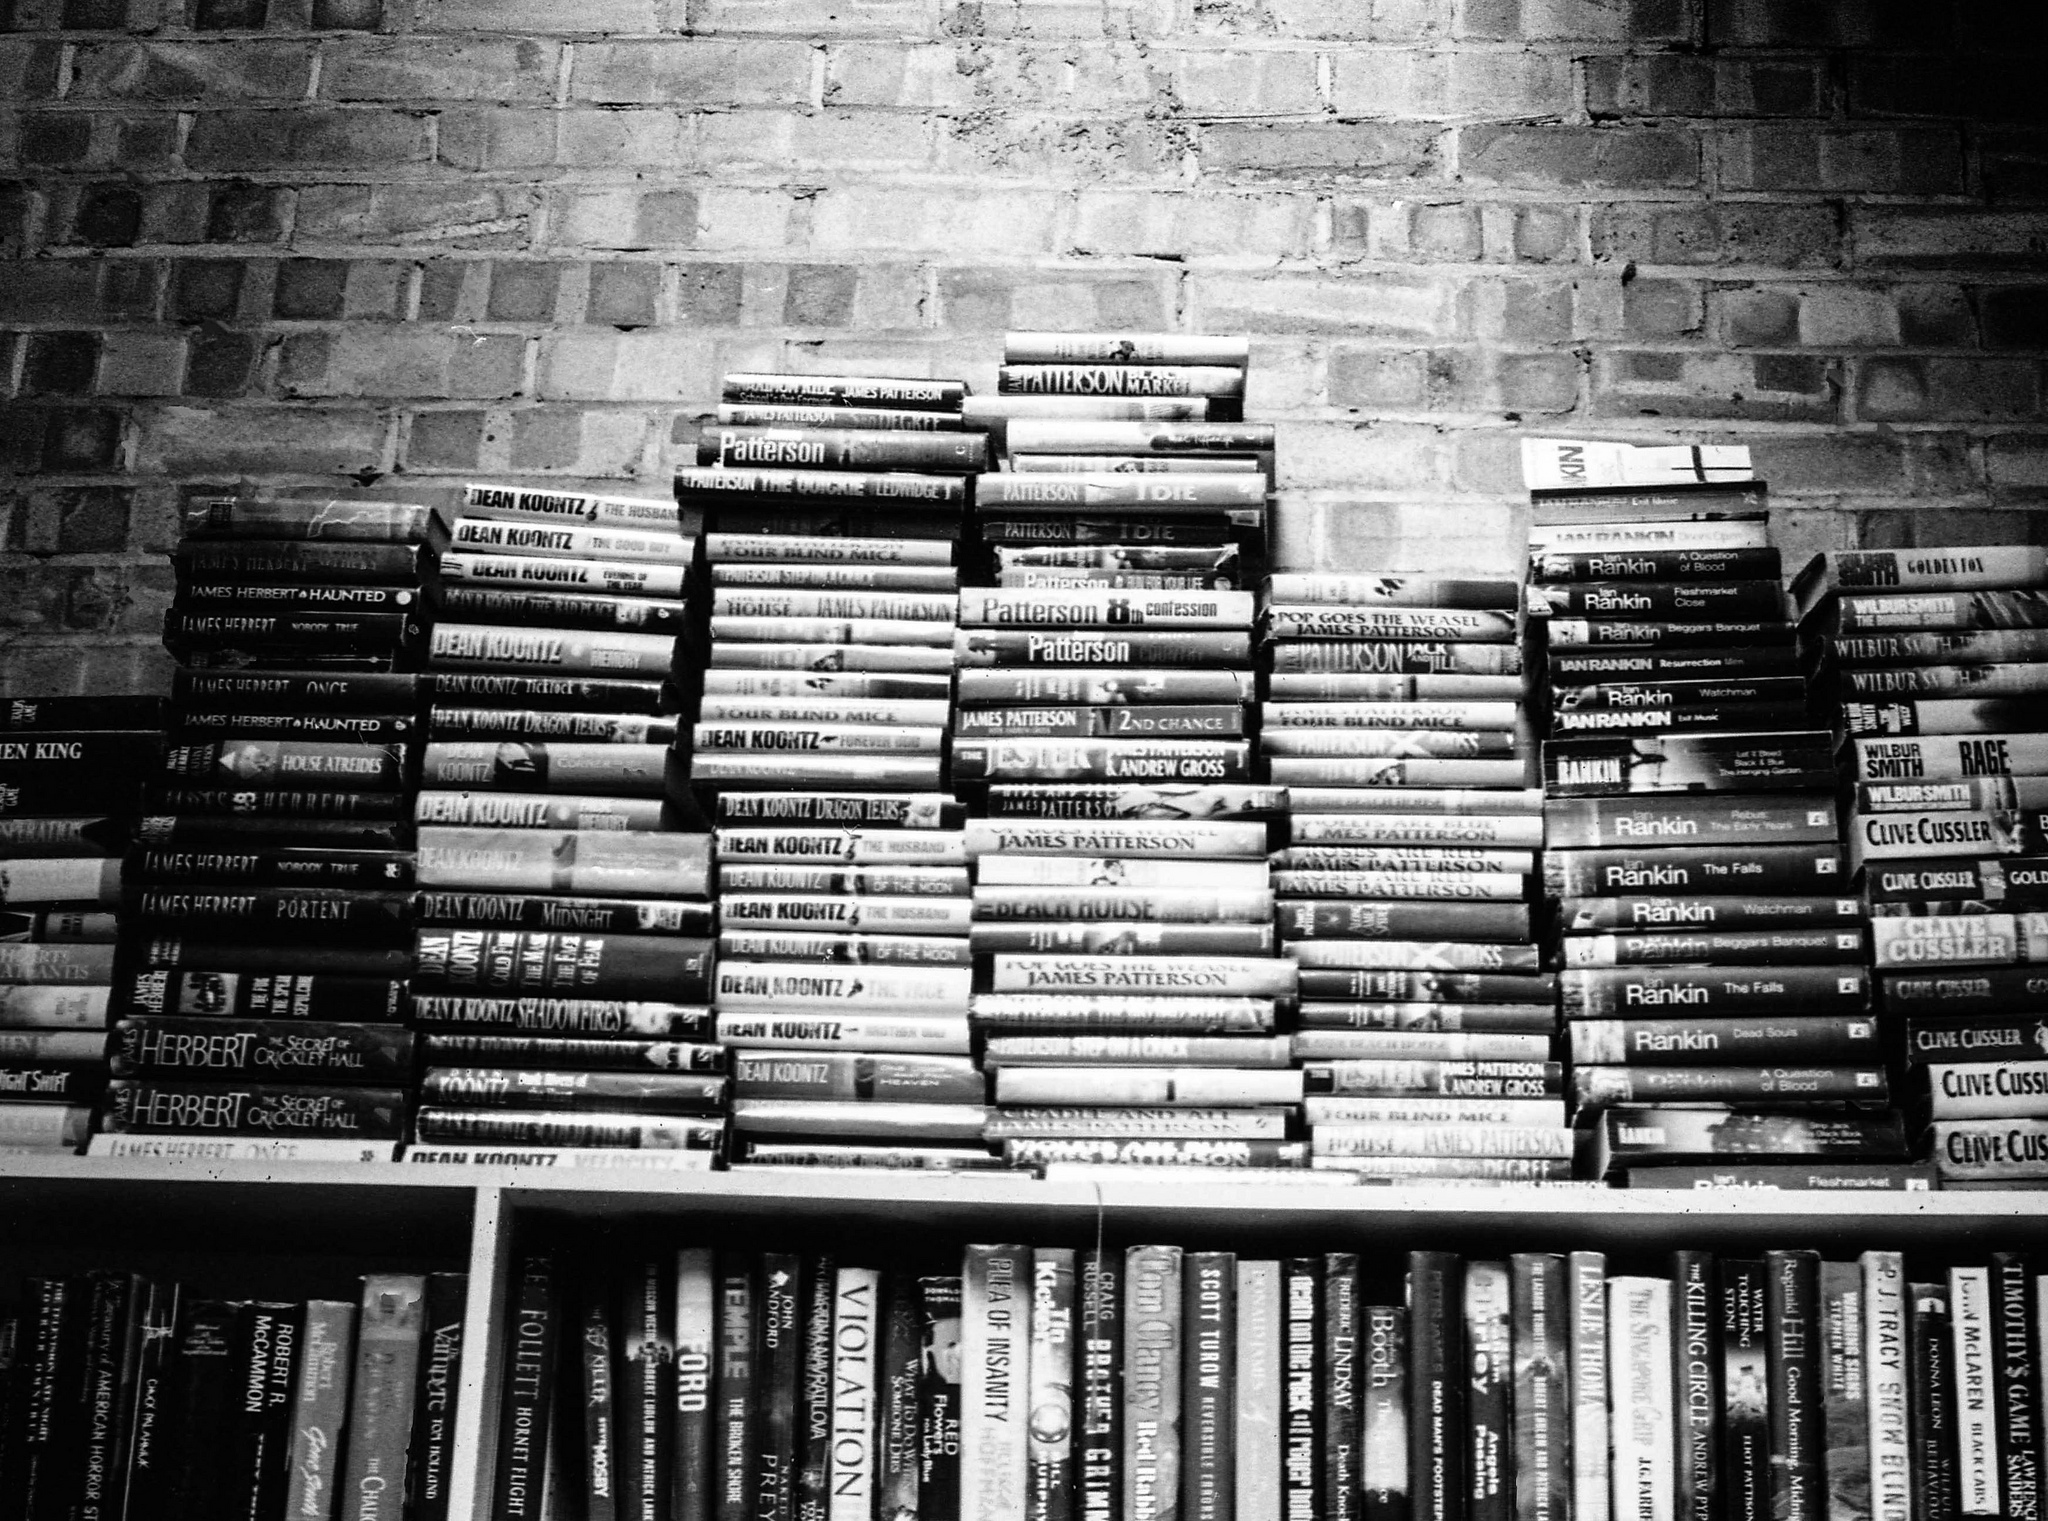 Black and white photo of stacks of books